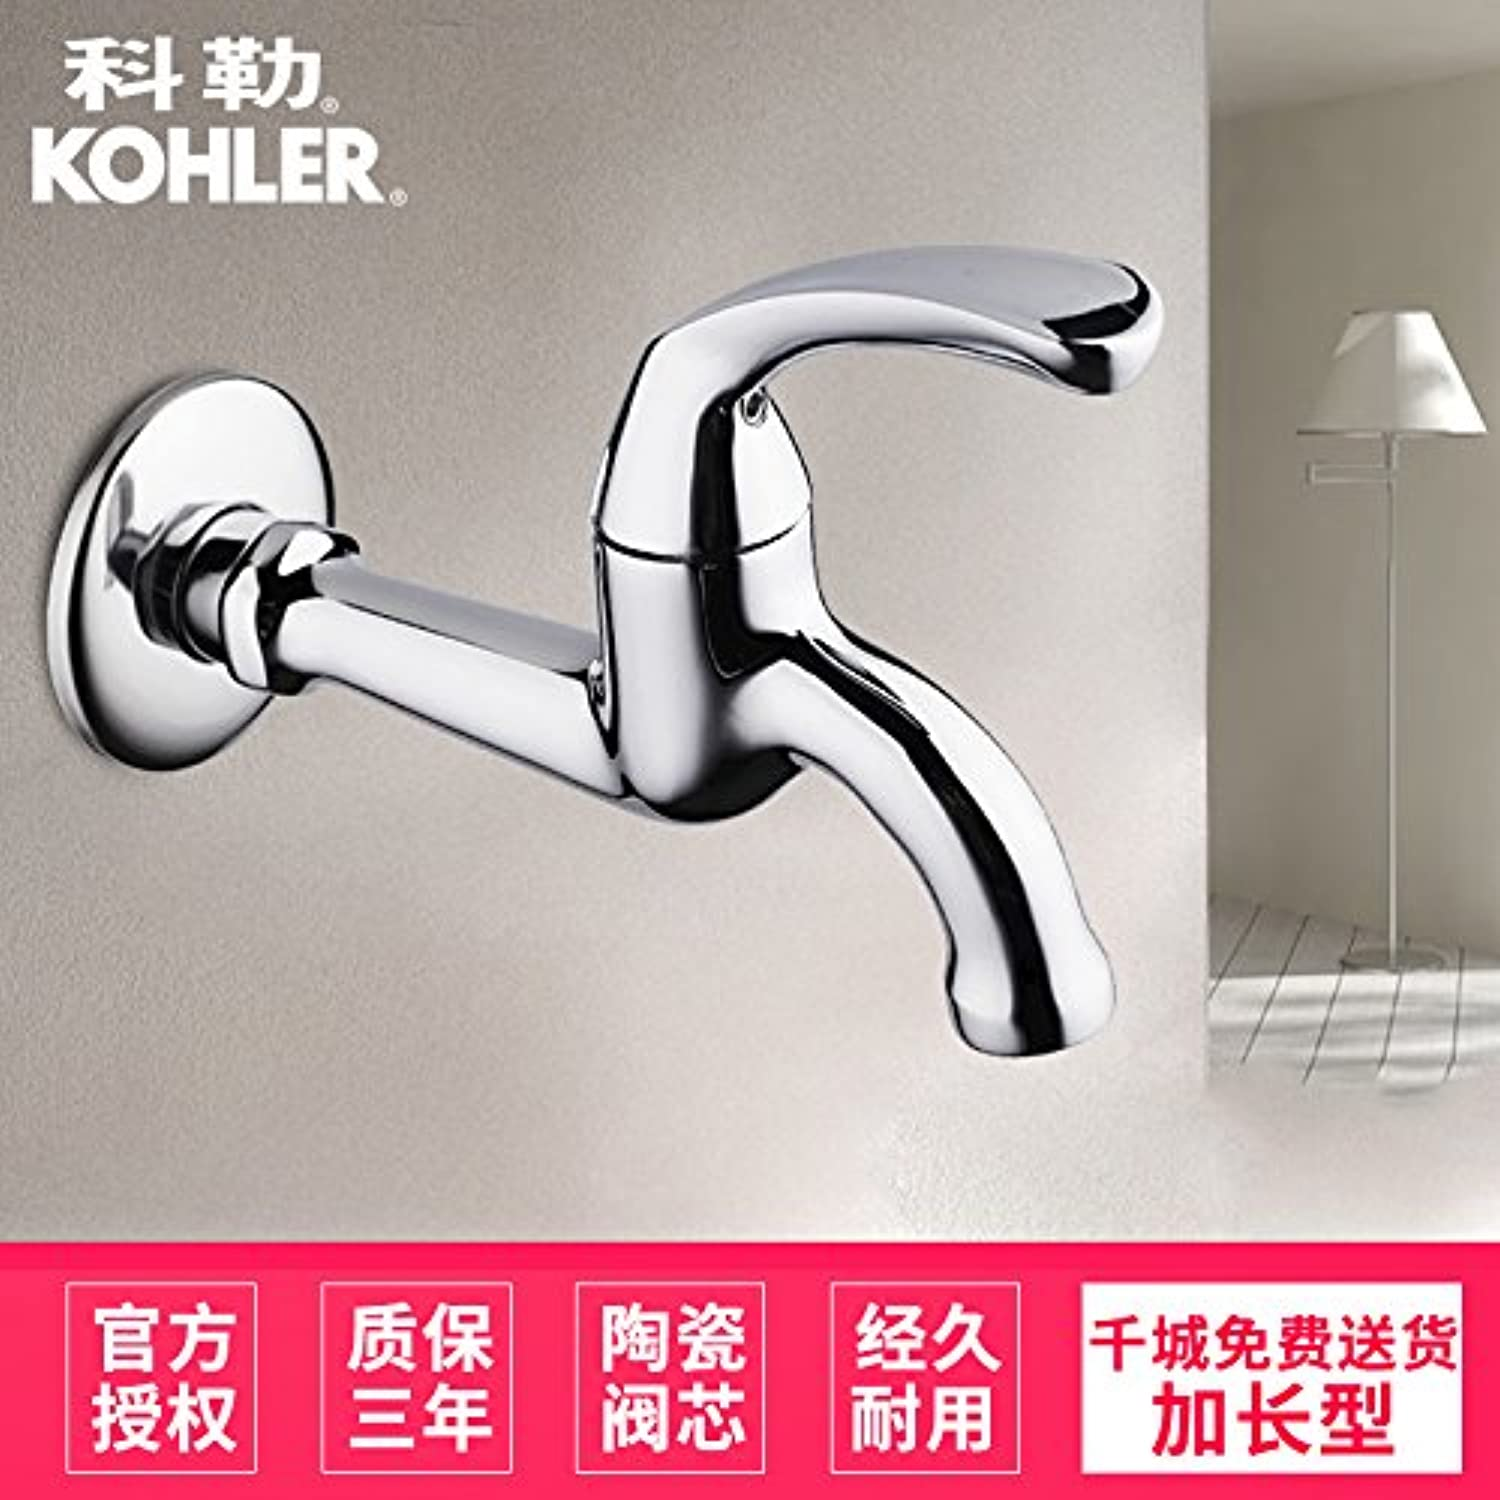 Gyps Faucet Single Lever Washbasin Mixer Tap Faucet Single Cold Water in Pool Faucet Extension Mops Slot Tap KR 13901 TKR 13901 T4CP